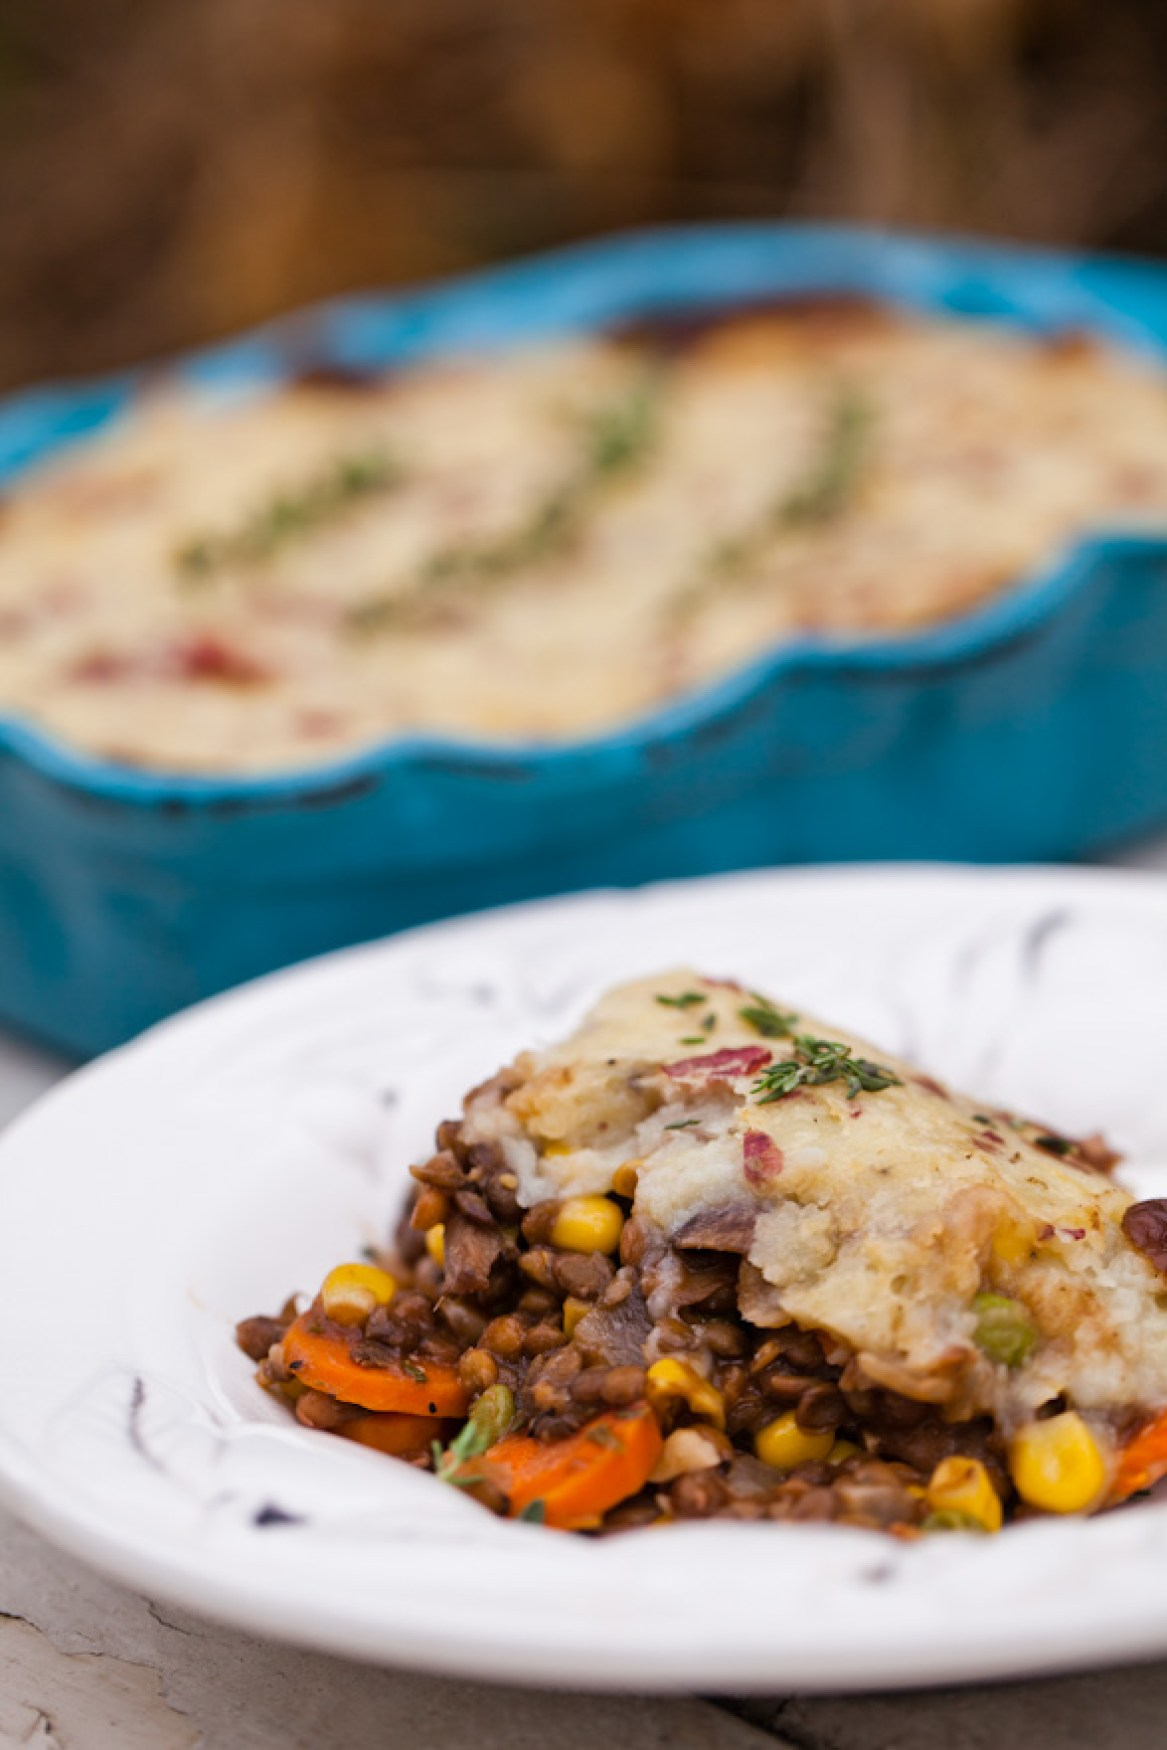 The ULTIMATE plant-based comfort food, Vegan Shepherd's Pie! Portobellos and Lentils with a rich red wine gravy | Easy vegan dinner recipe | Holiday dinner party recipe